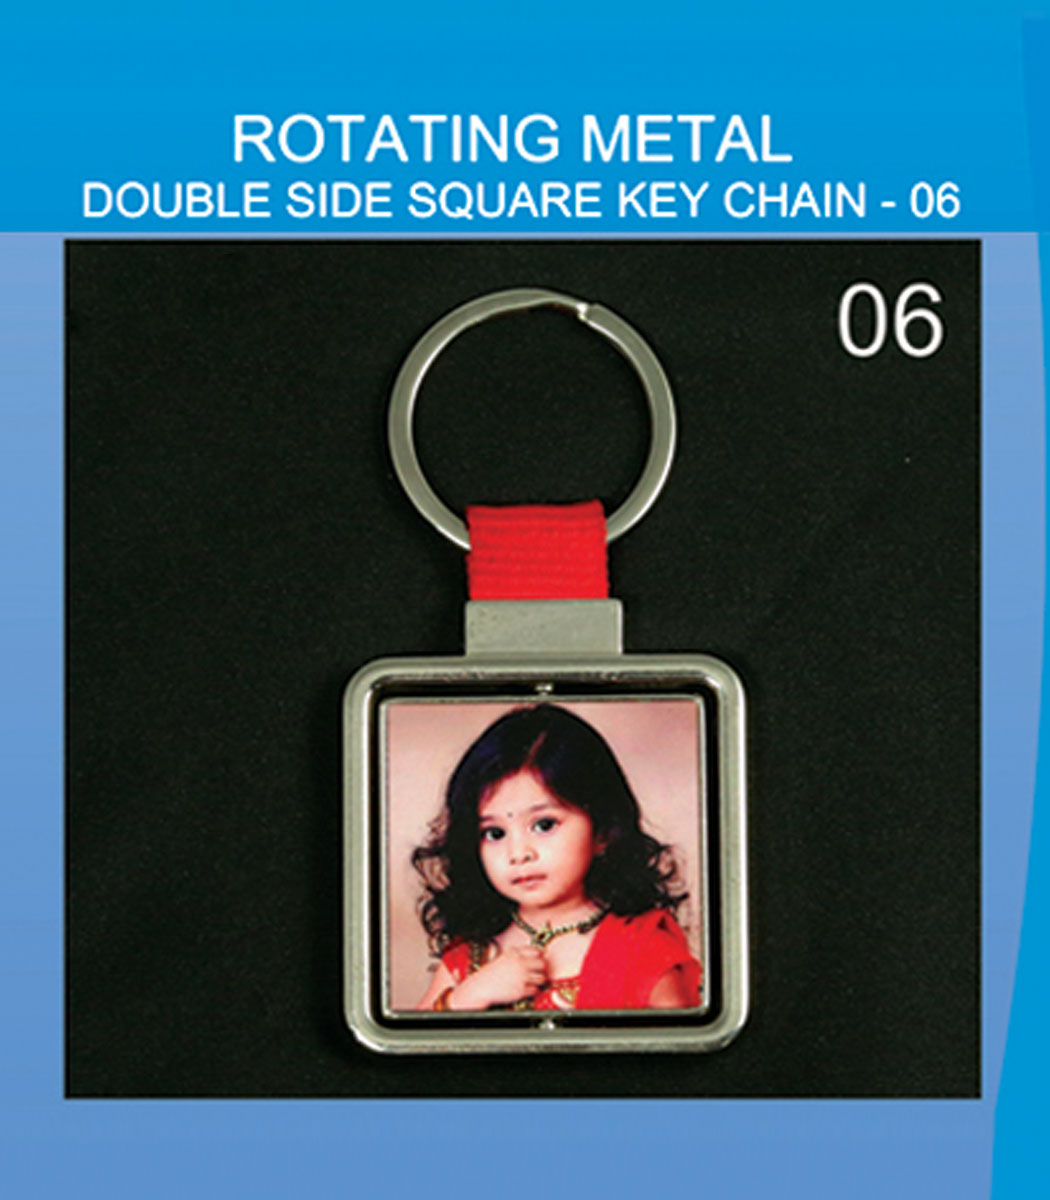 Routating metal double side square keychain